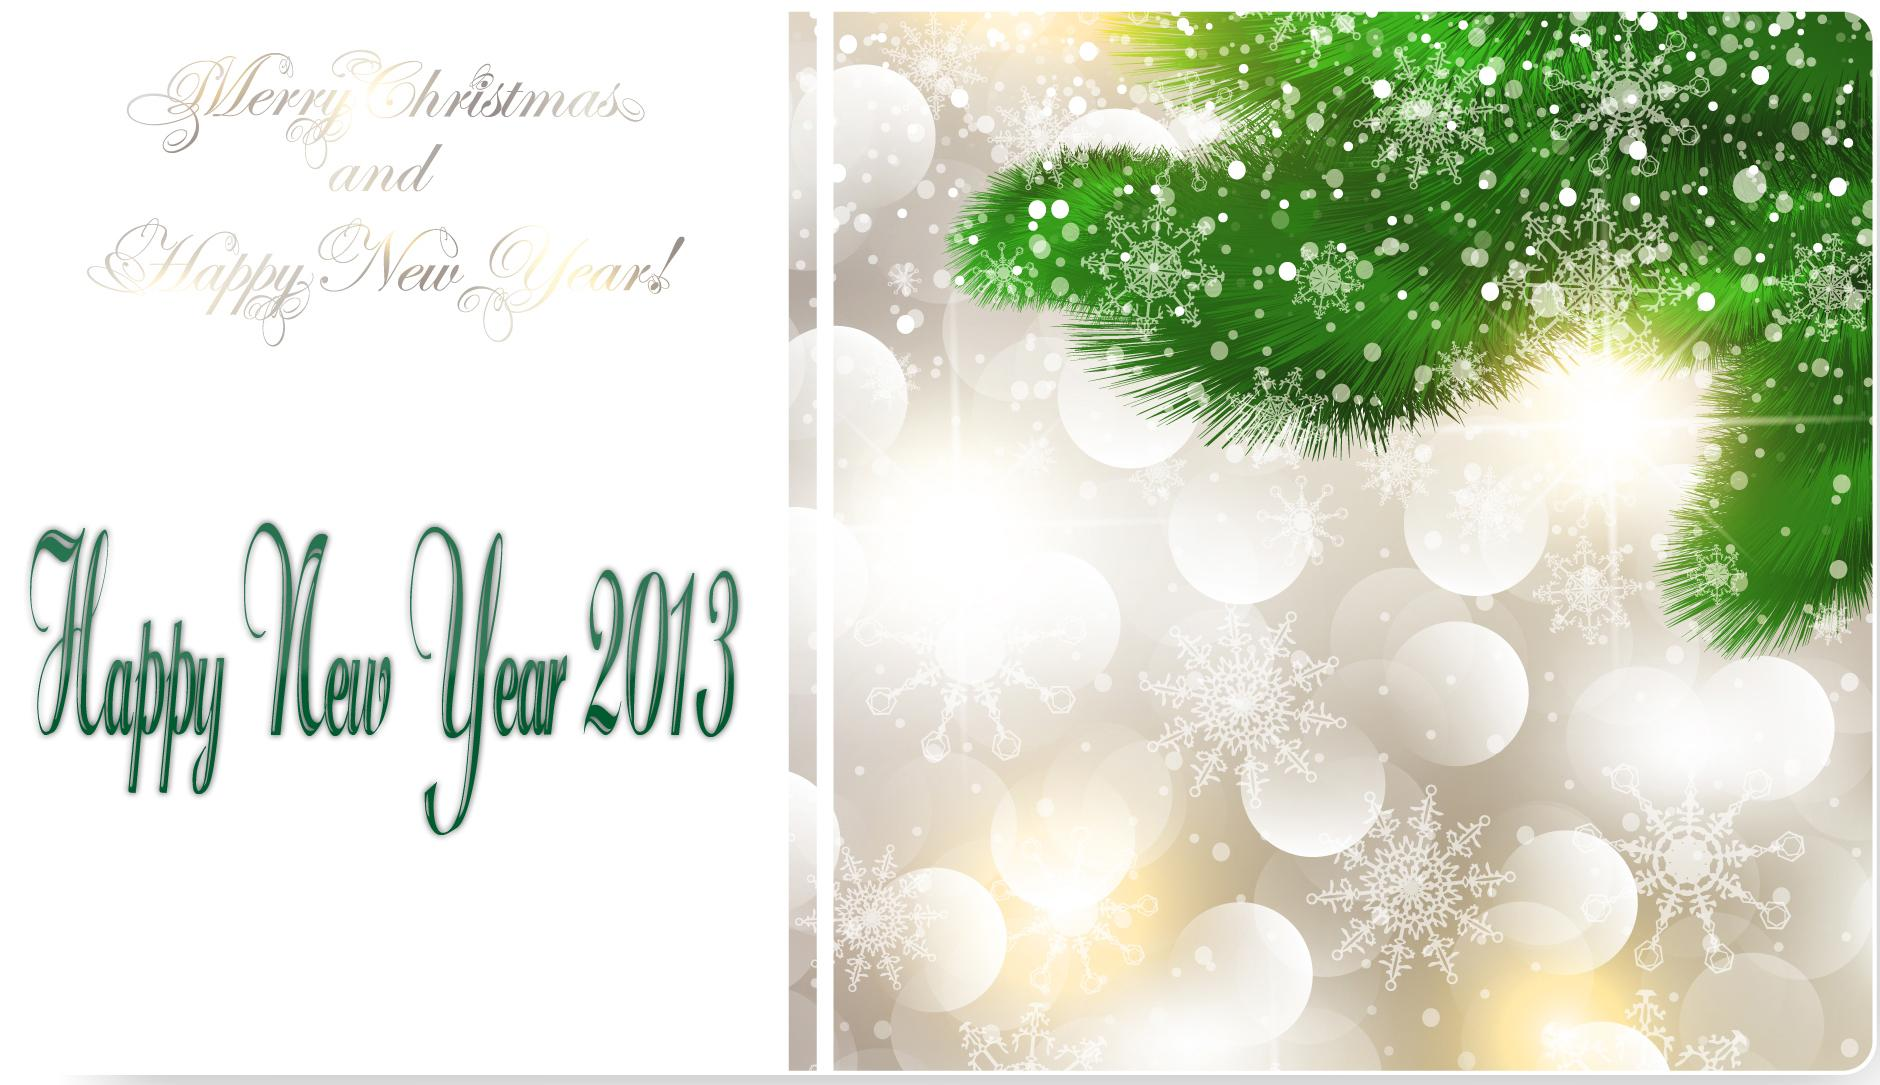 eCards-Happy-New-Year-2013-Wishes